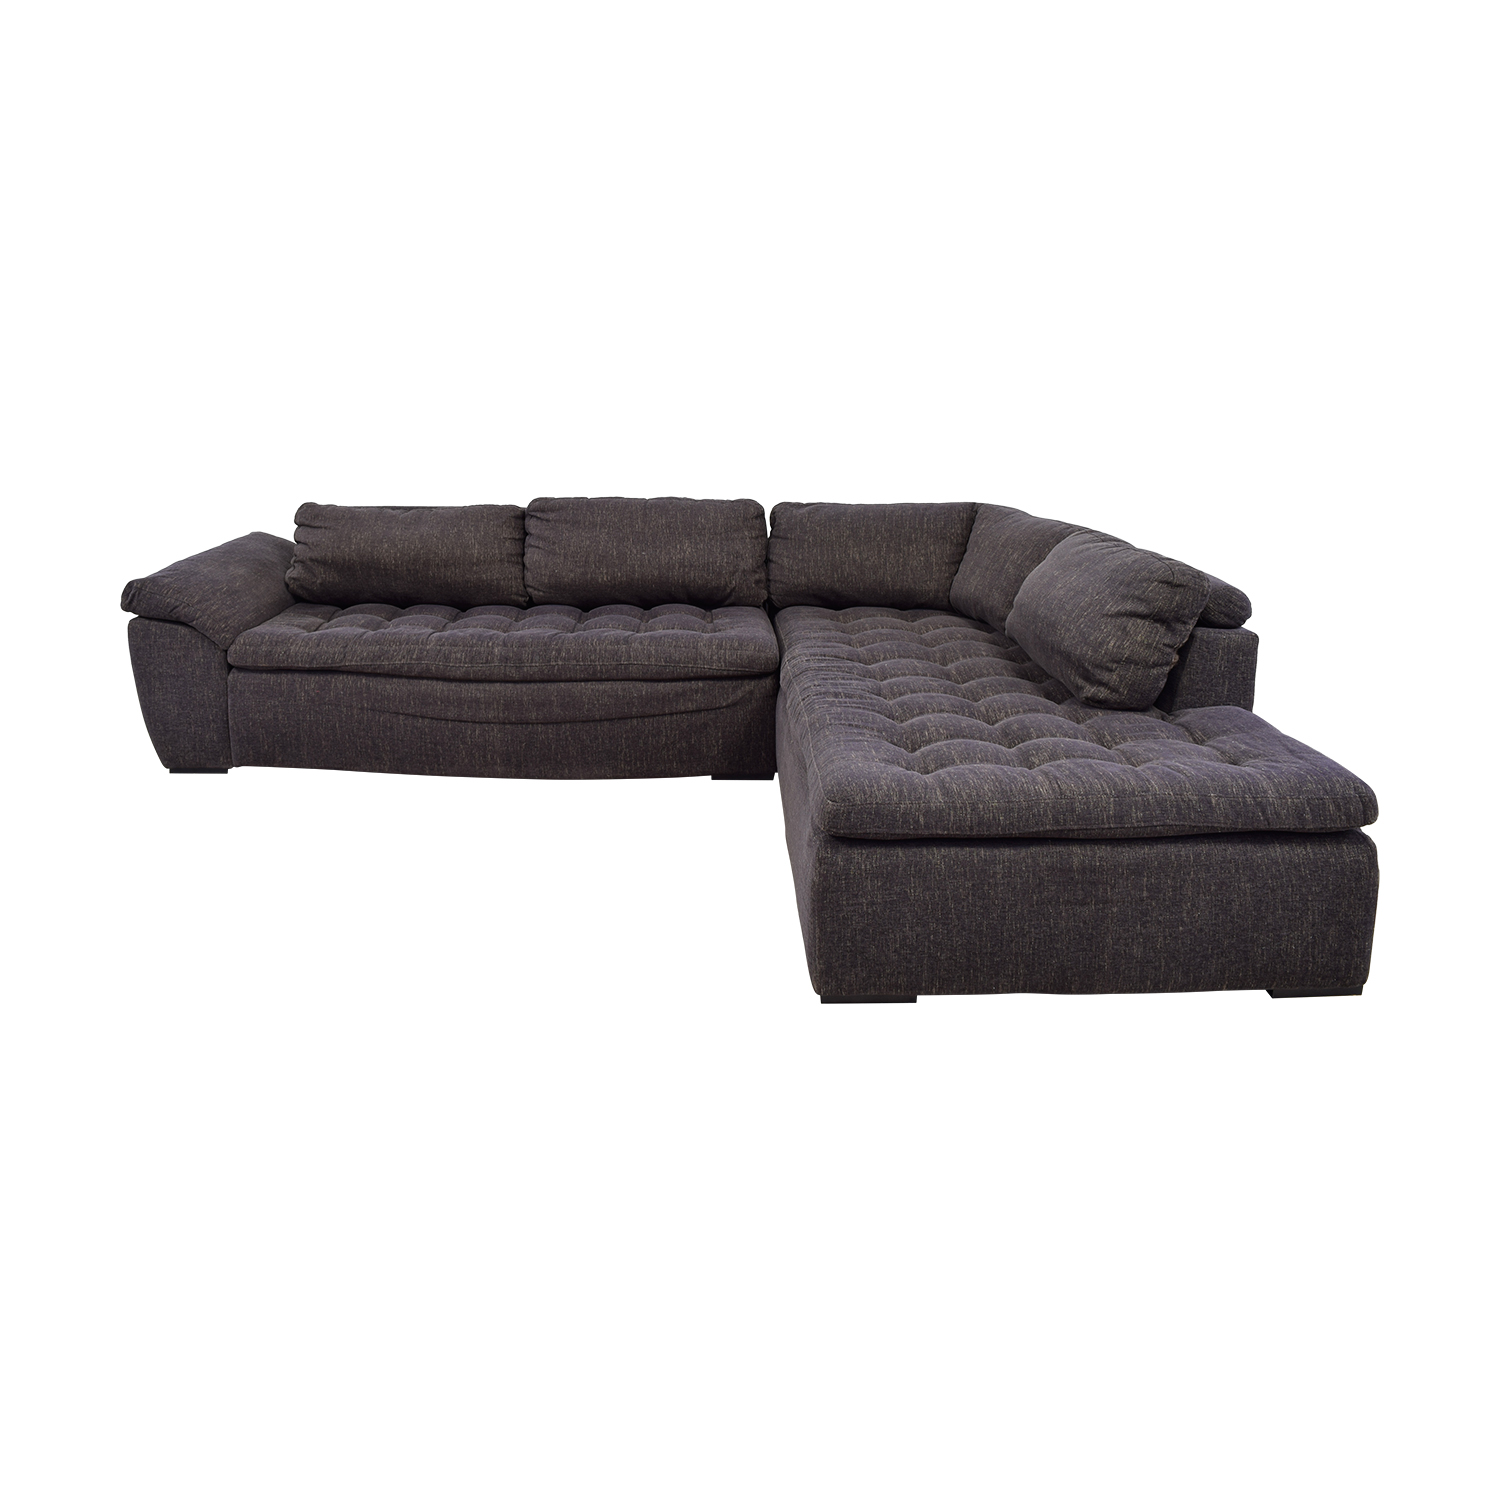 buy Purple Tufted L-Shaped Sectional